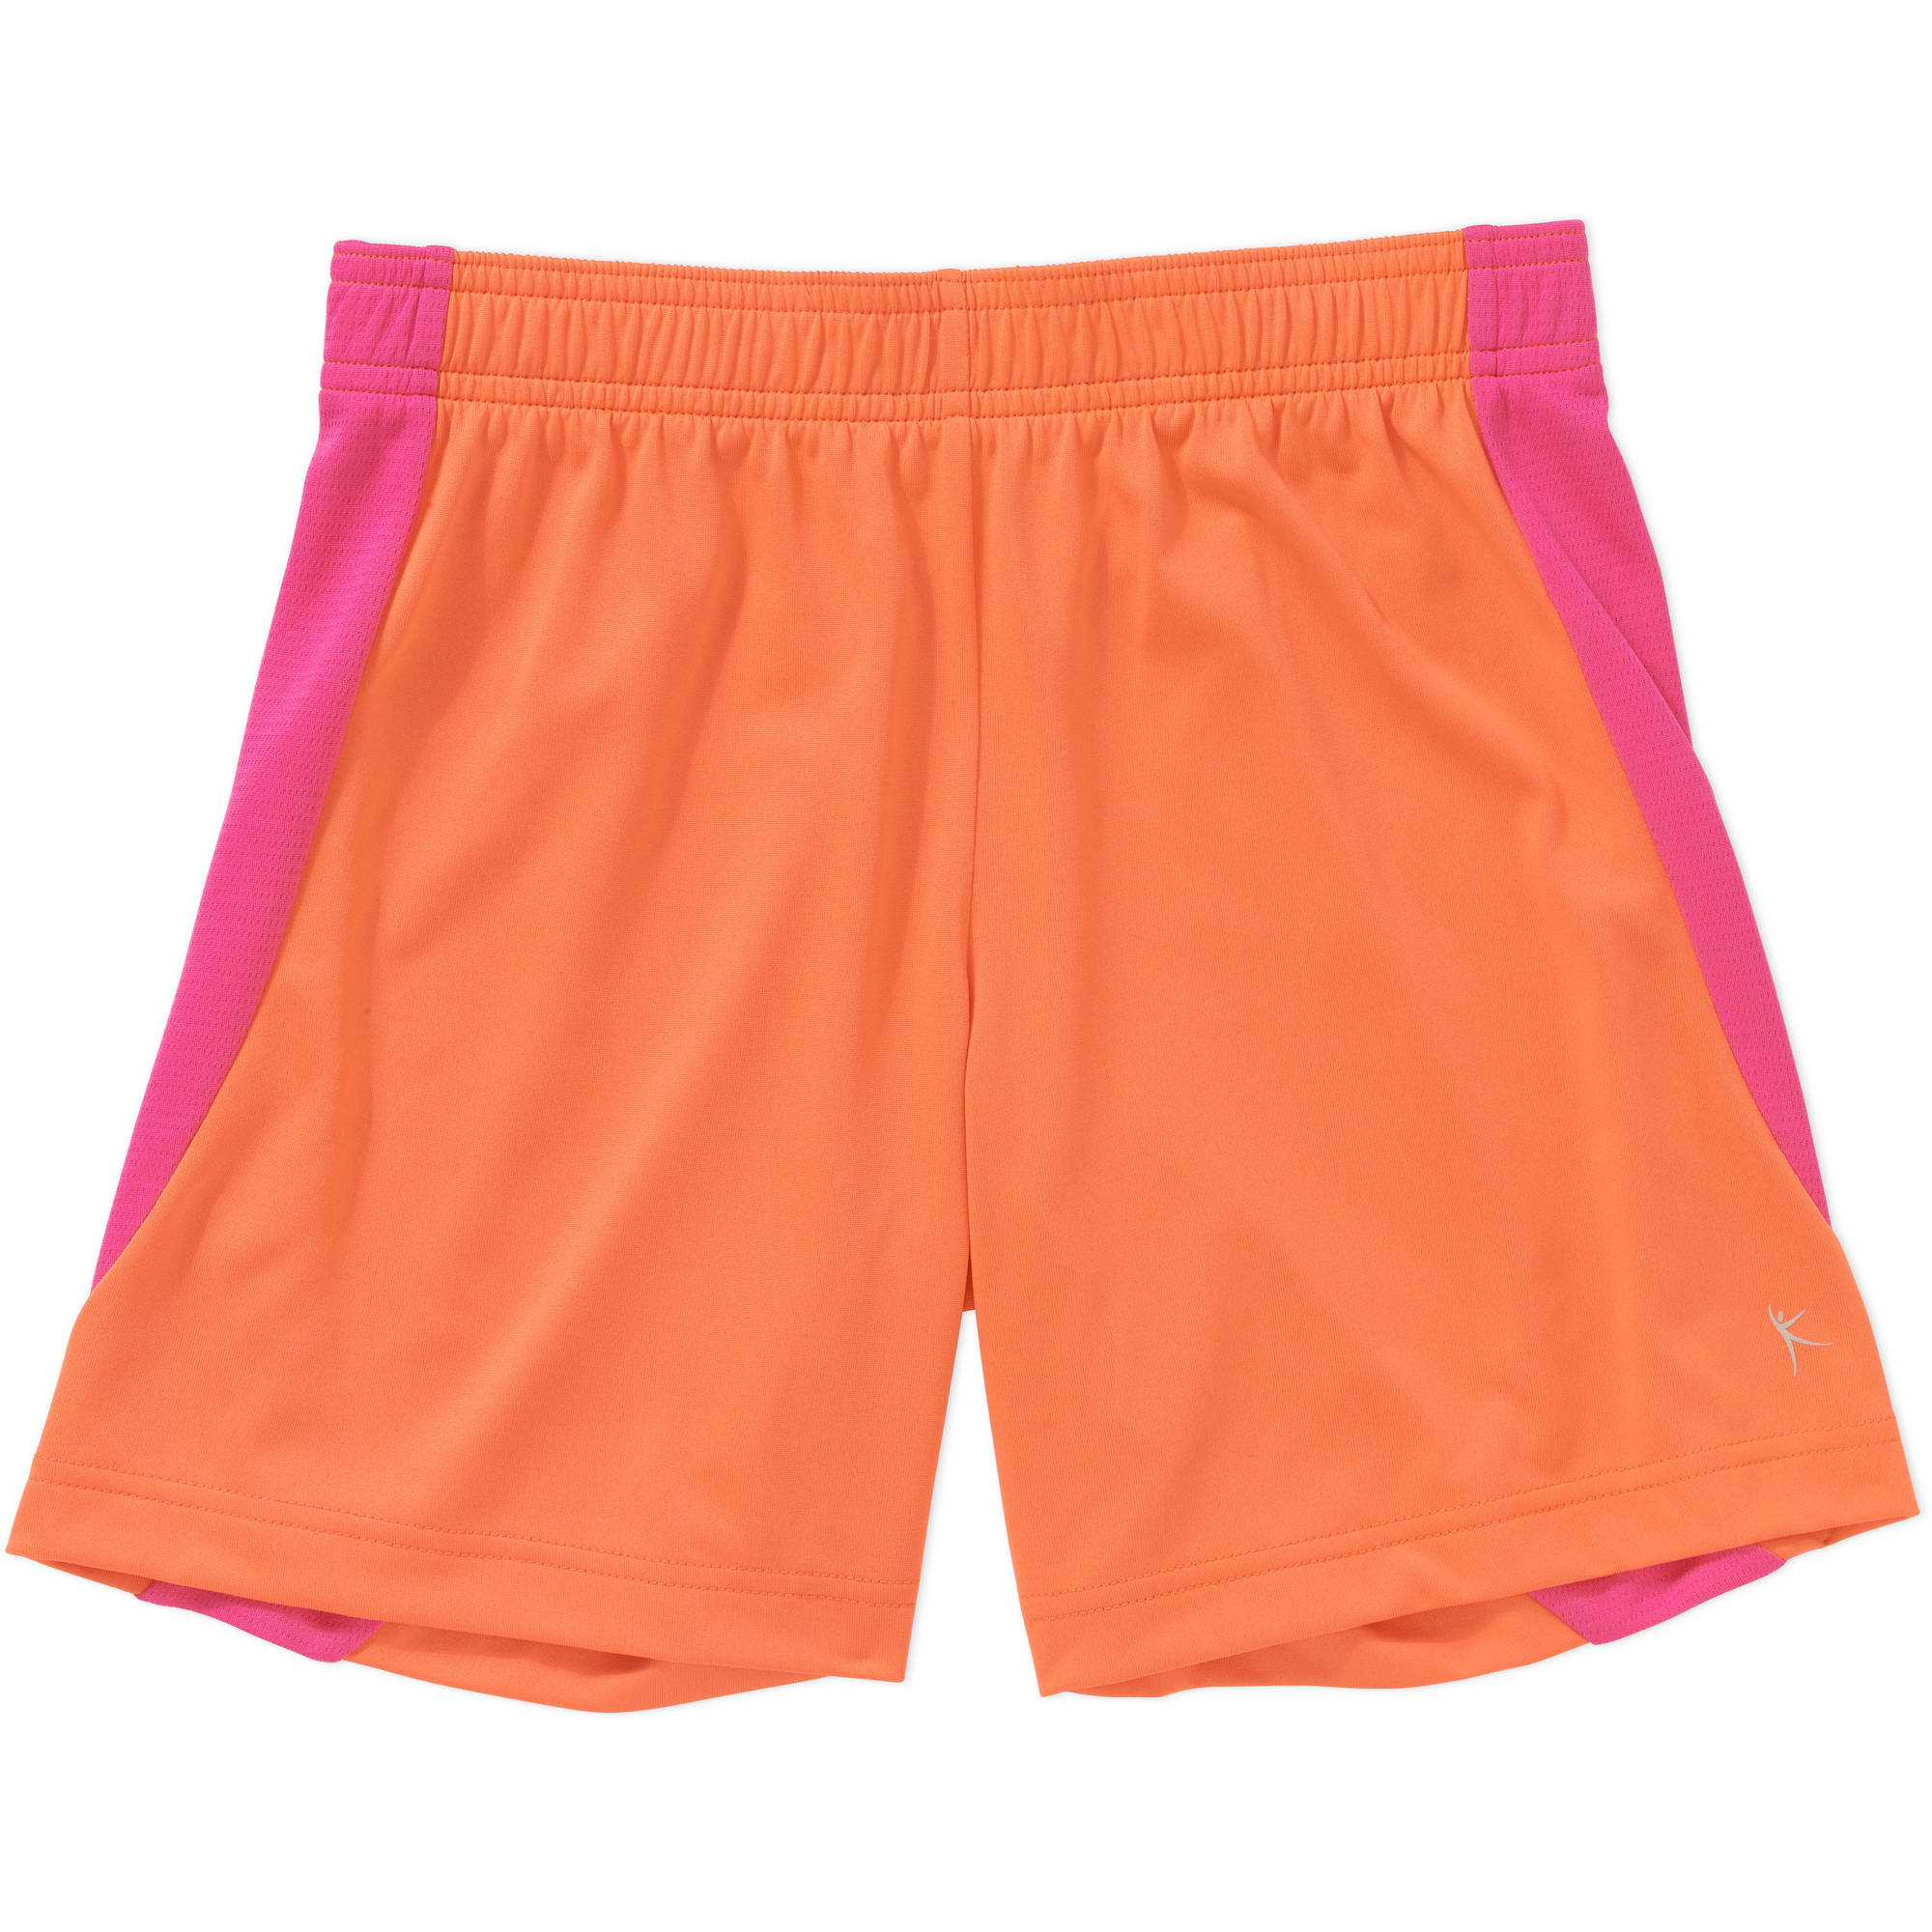 Danskin Now Girls' Soccer Short